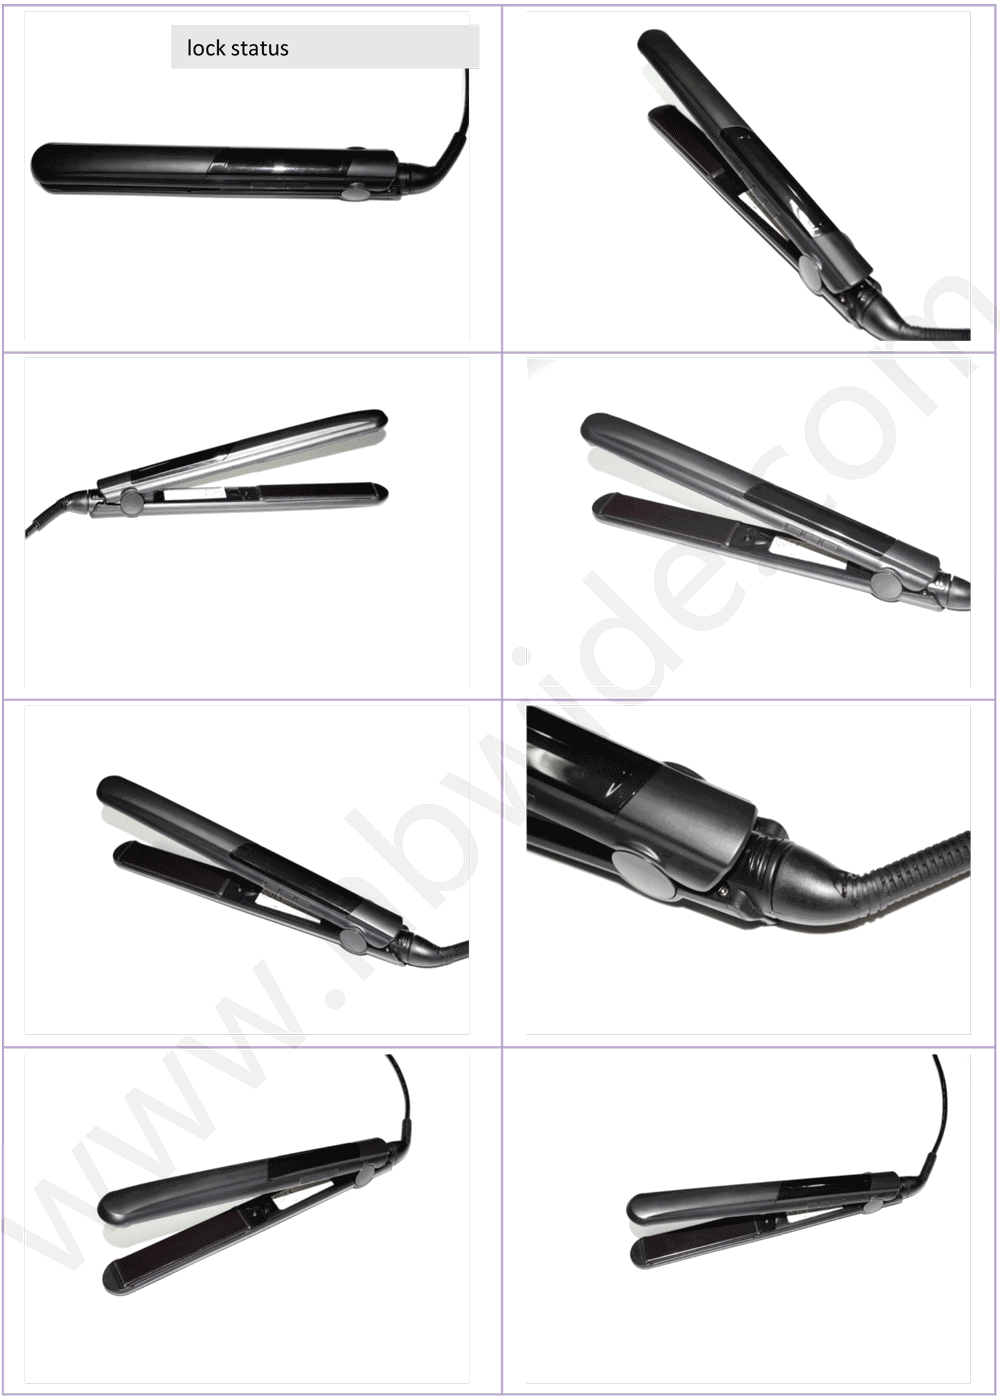 Wide Voltage Anion Ionic Hair Straightener From Alibaba Hair Salon Equipment Supplier